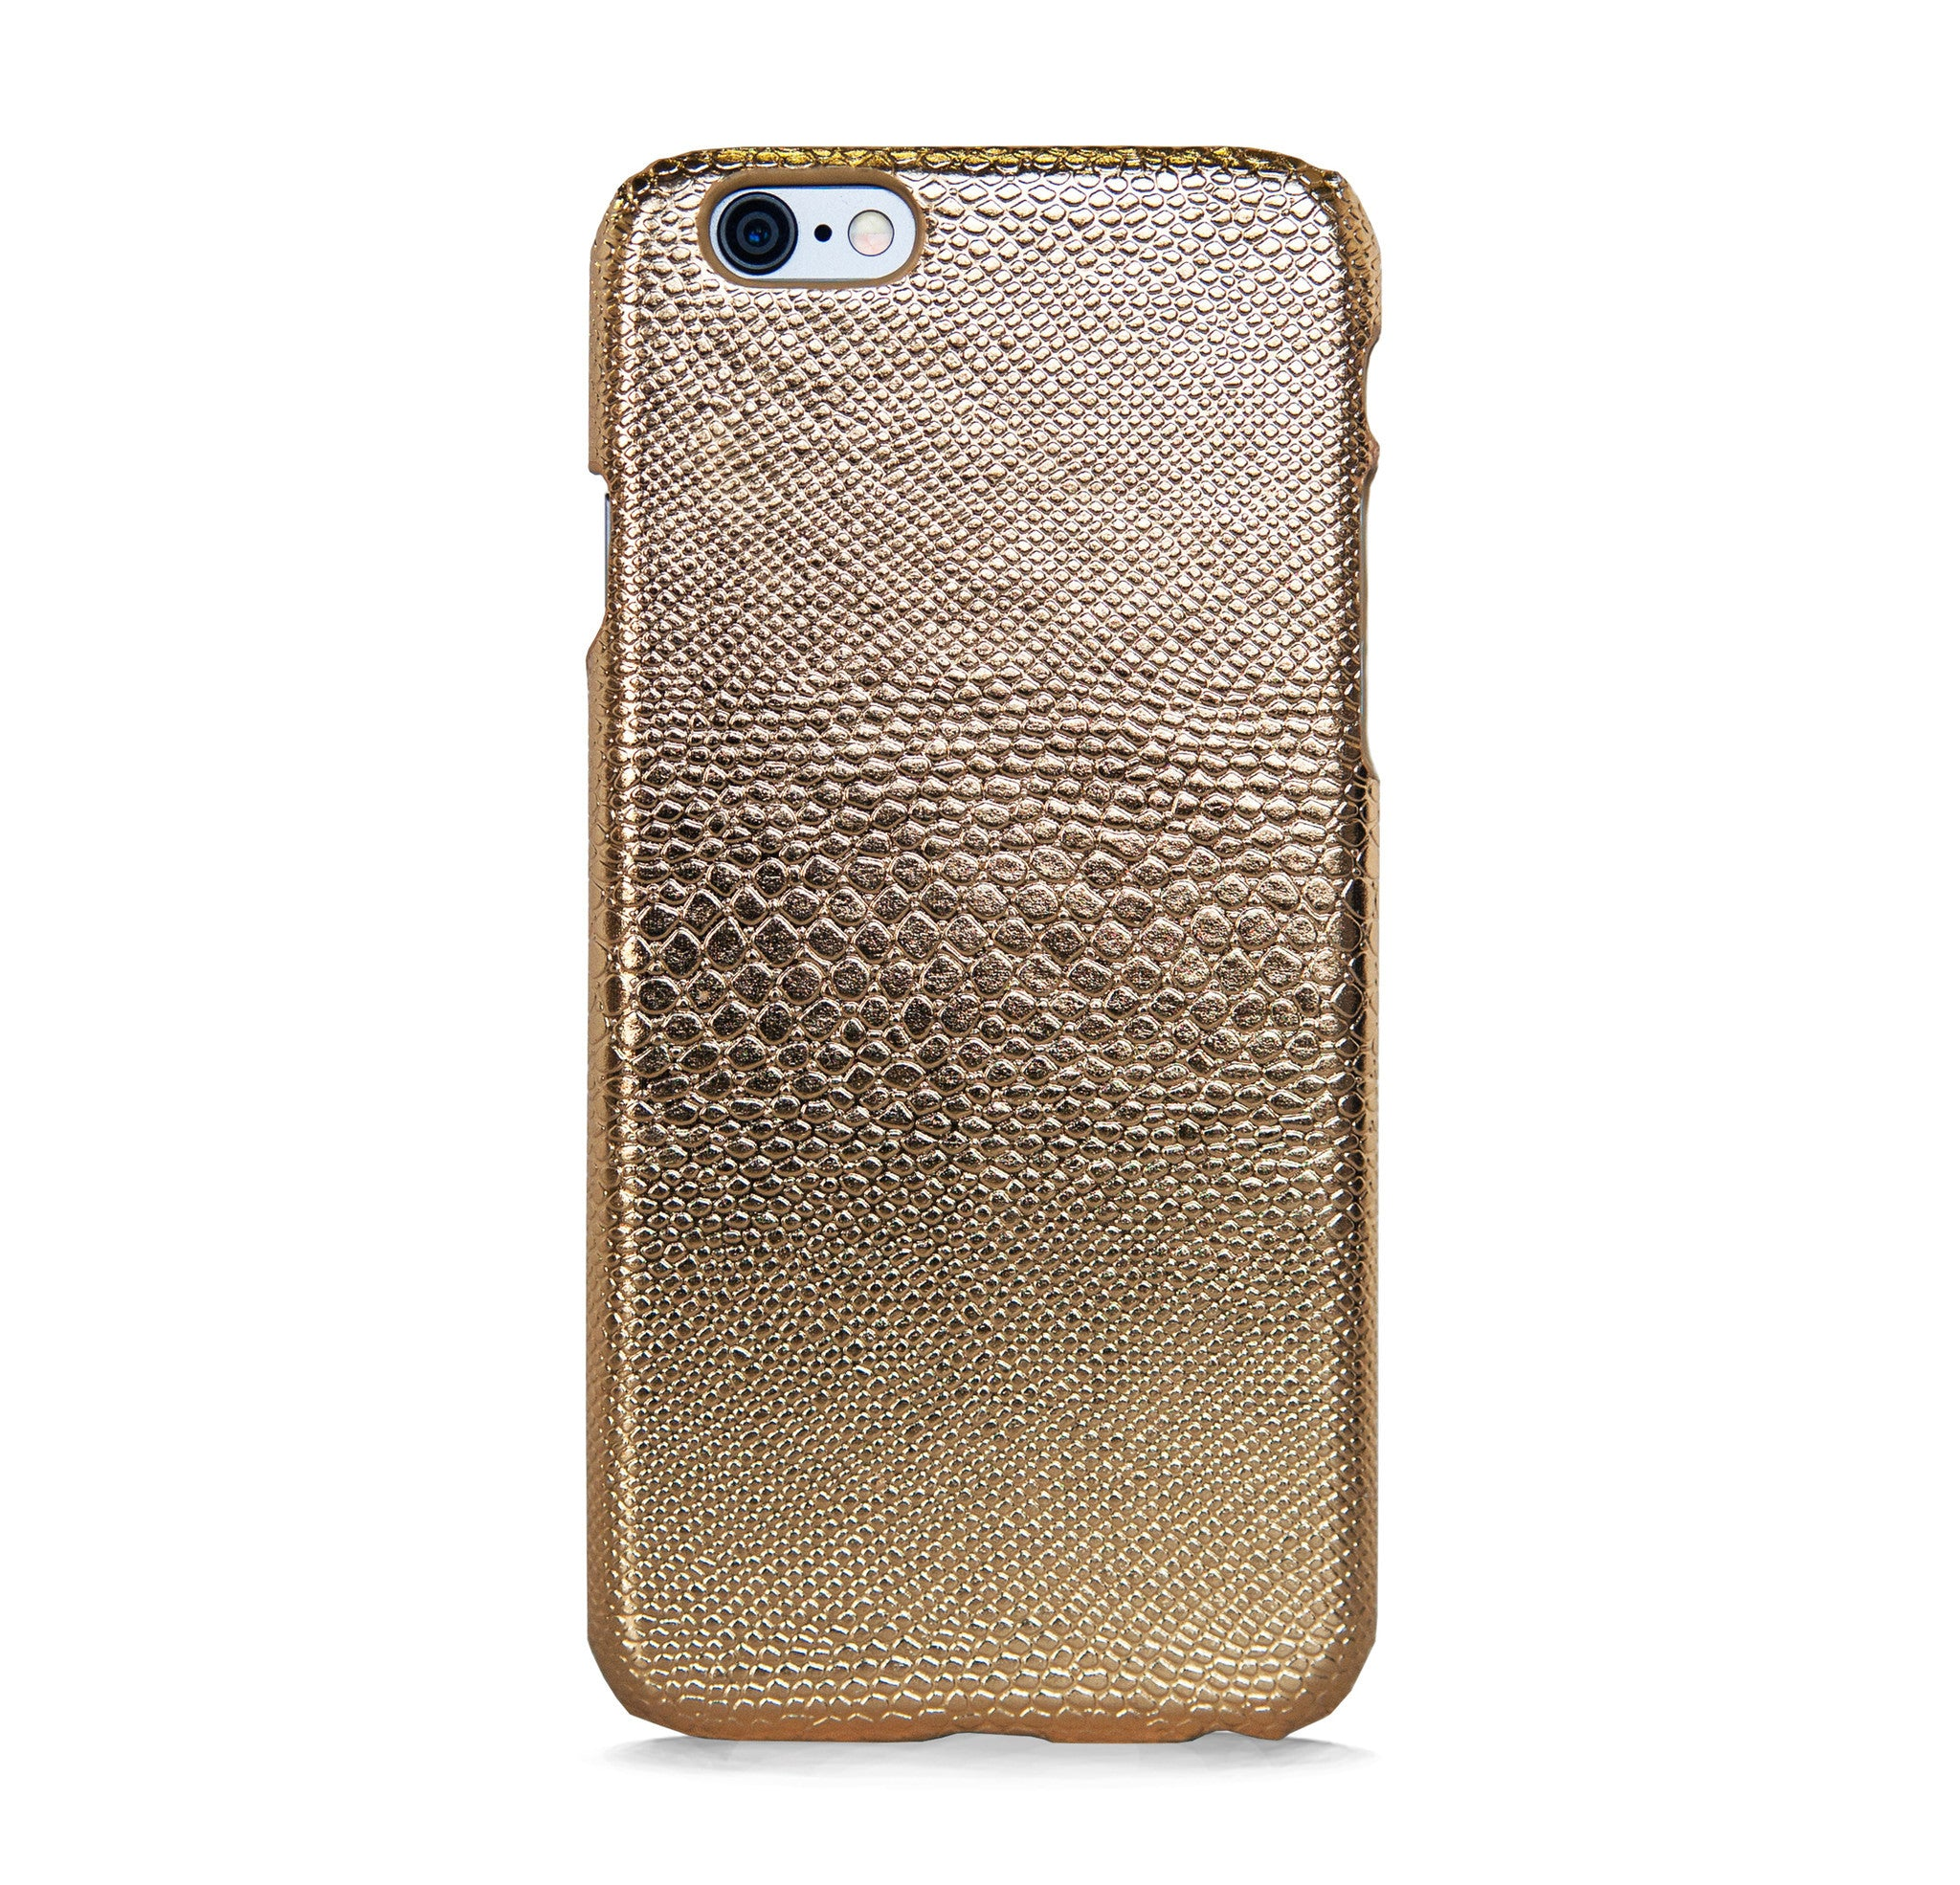 IPHONE 6/6s FAUX LEATHER GOLD CASE